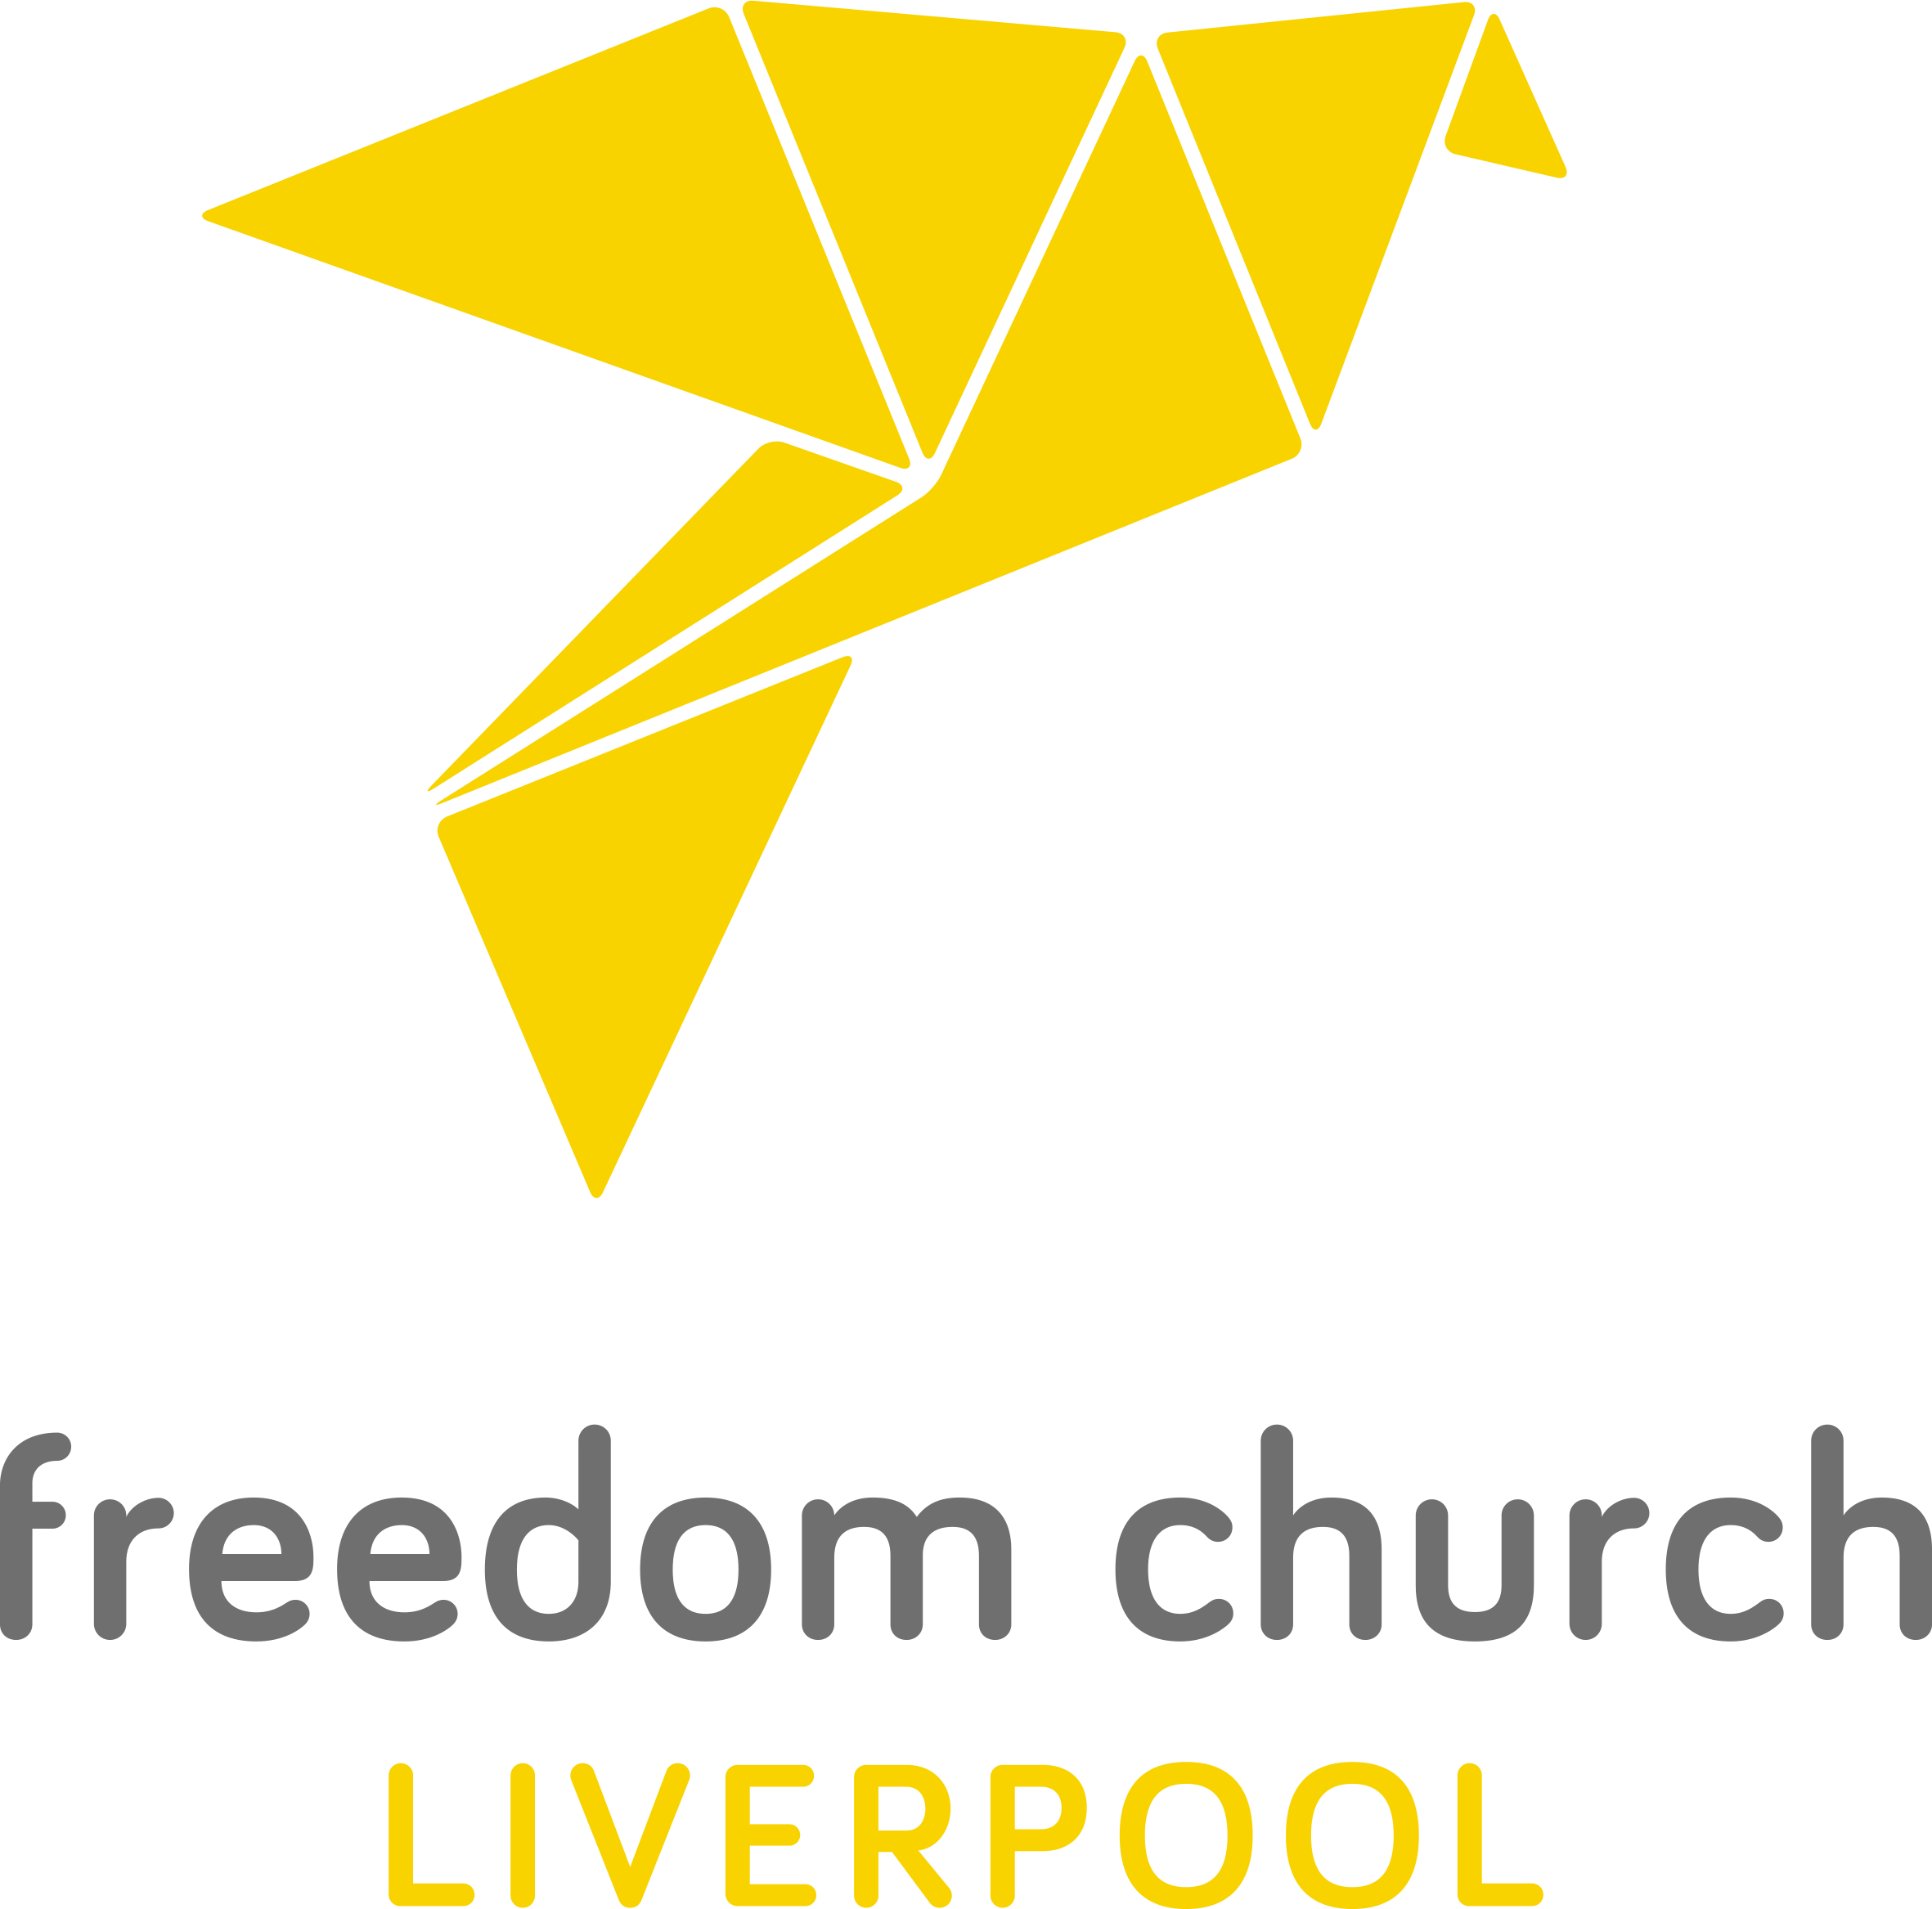 Freedom Church Liverpool